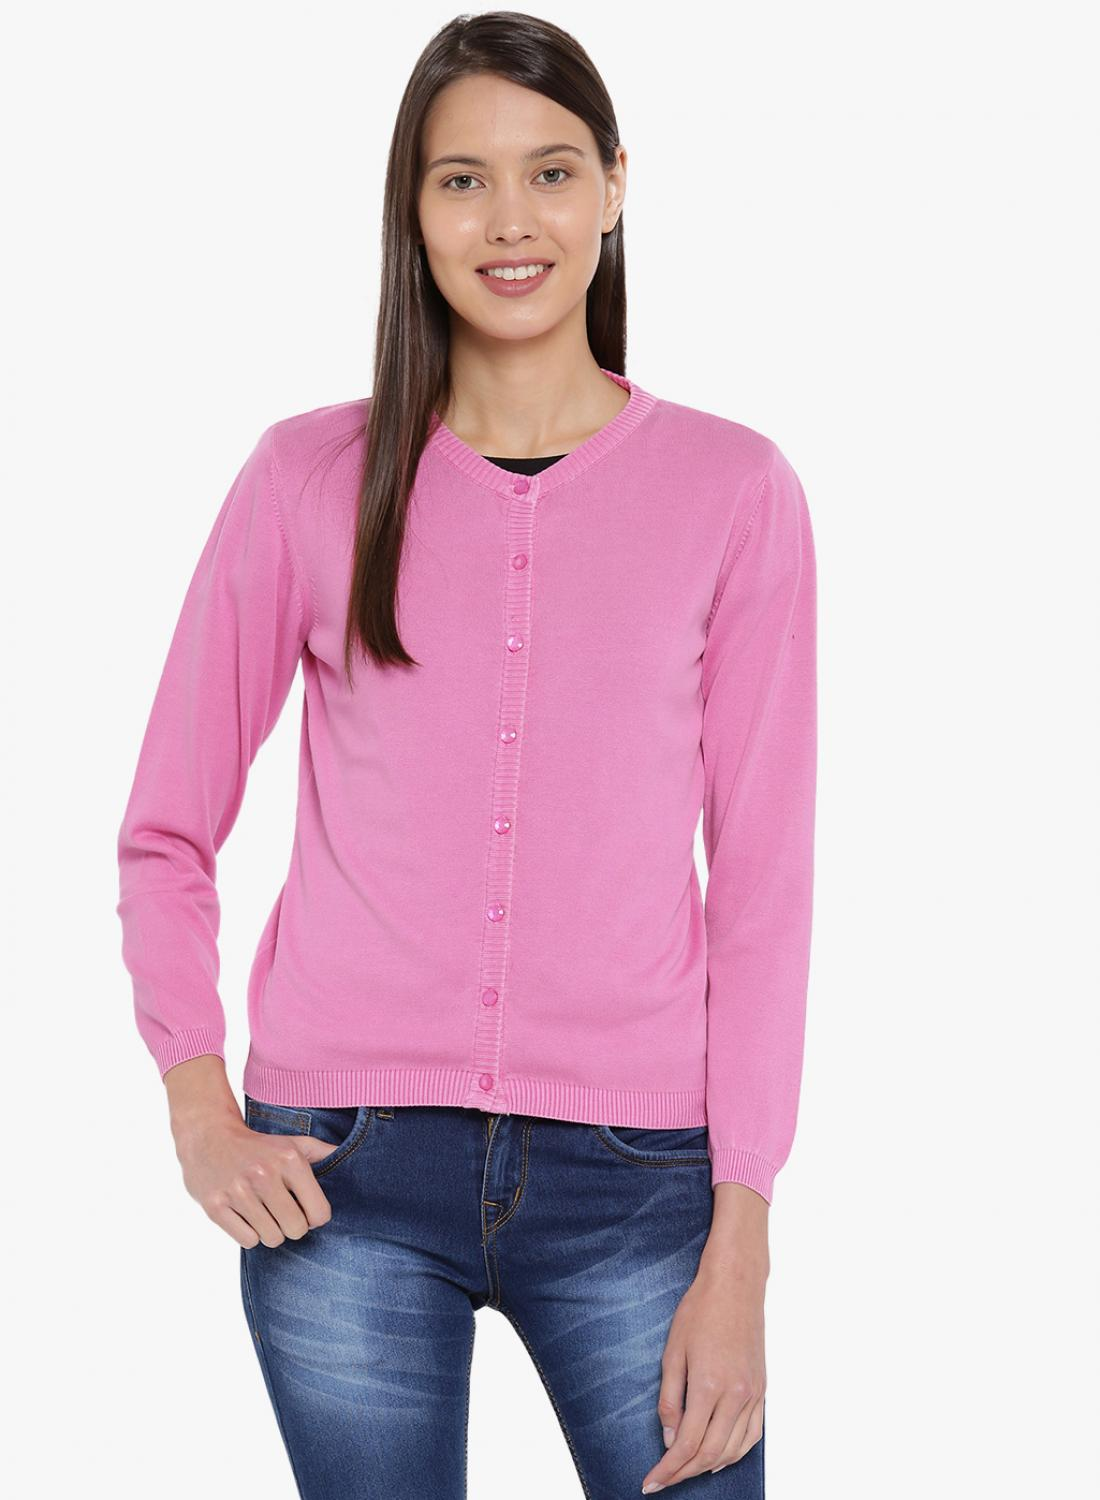 fcd649c35b3 Buy Pink Solid Round Neck Cardigan Online in India - Monte Carlo